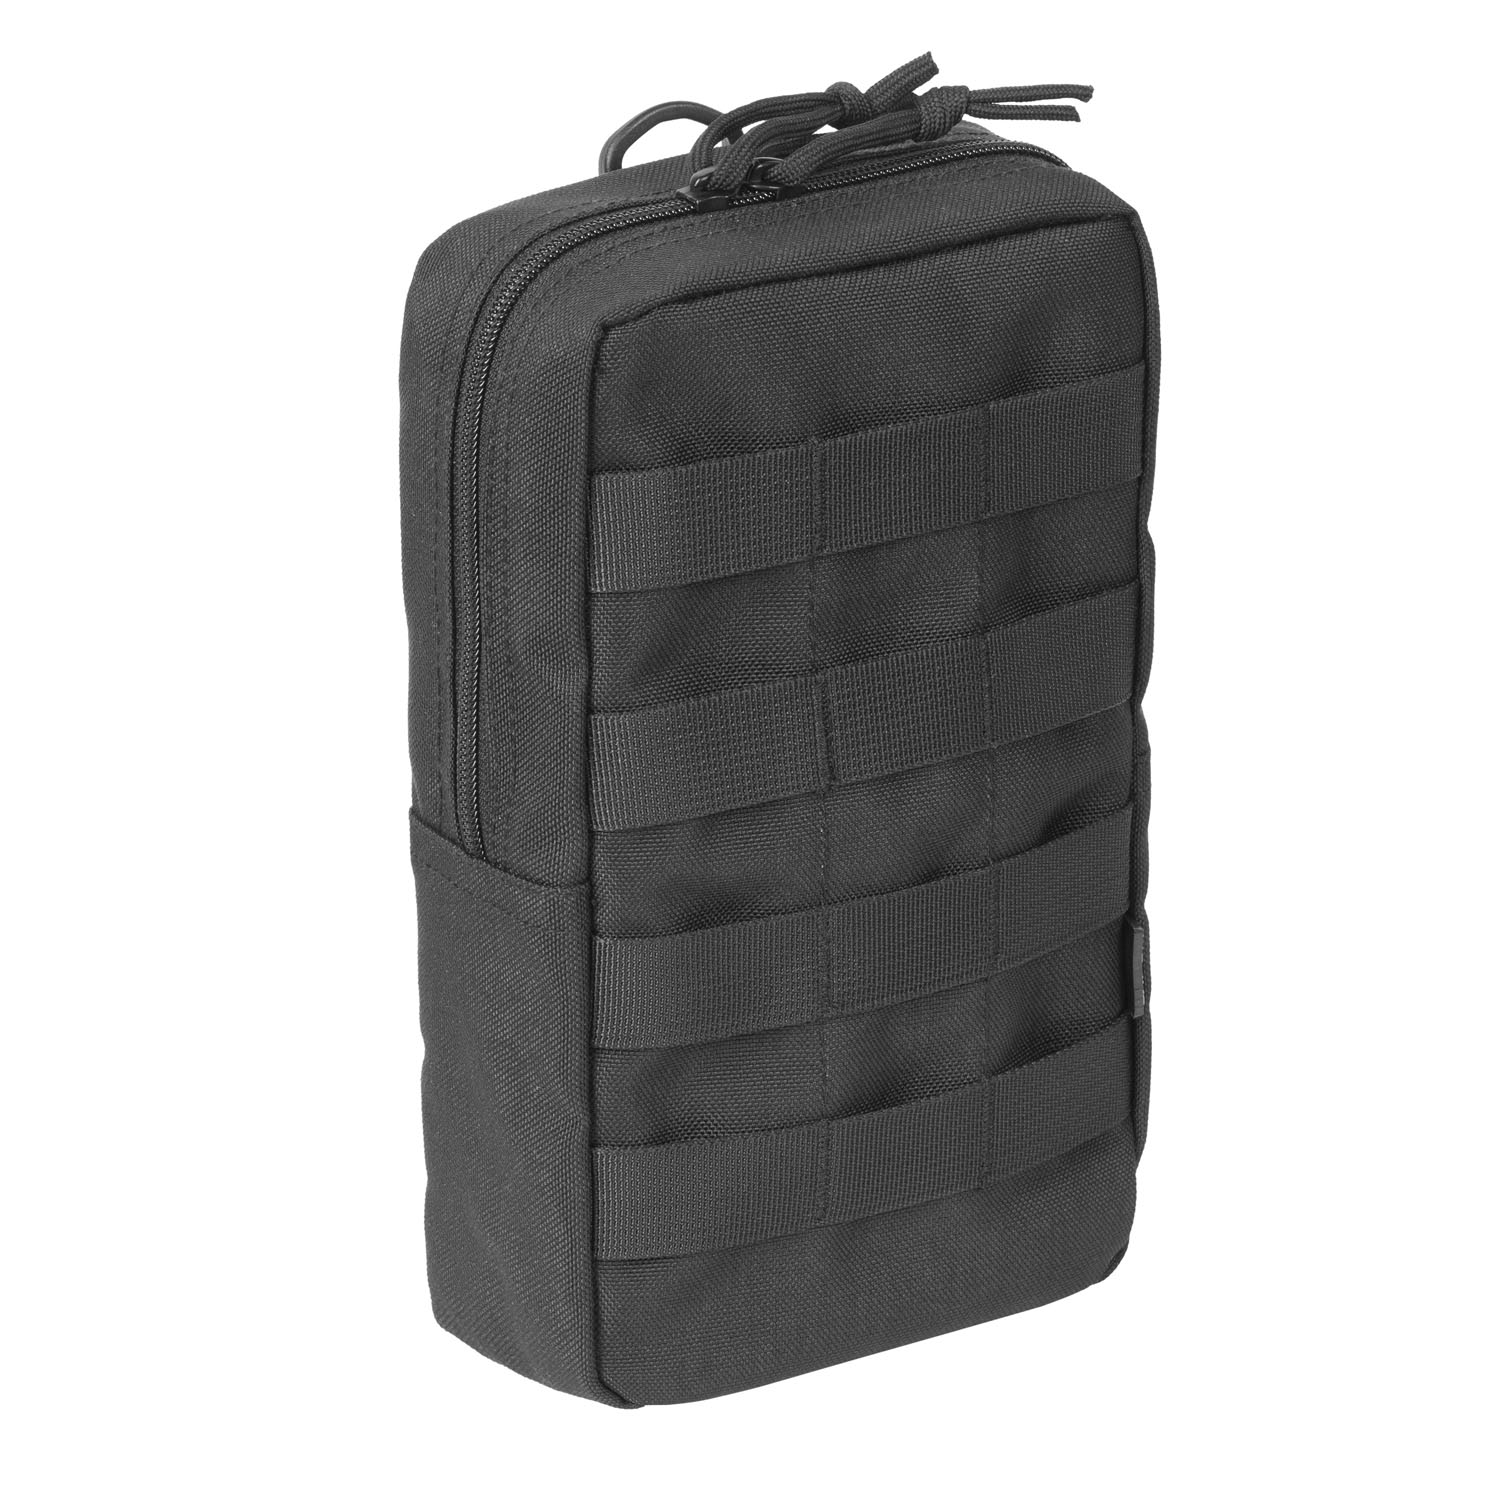 Large vertical utility pouch